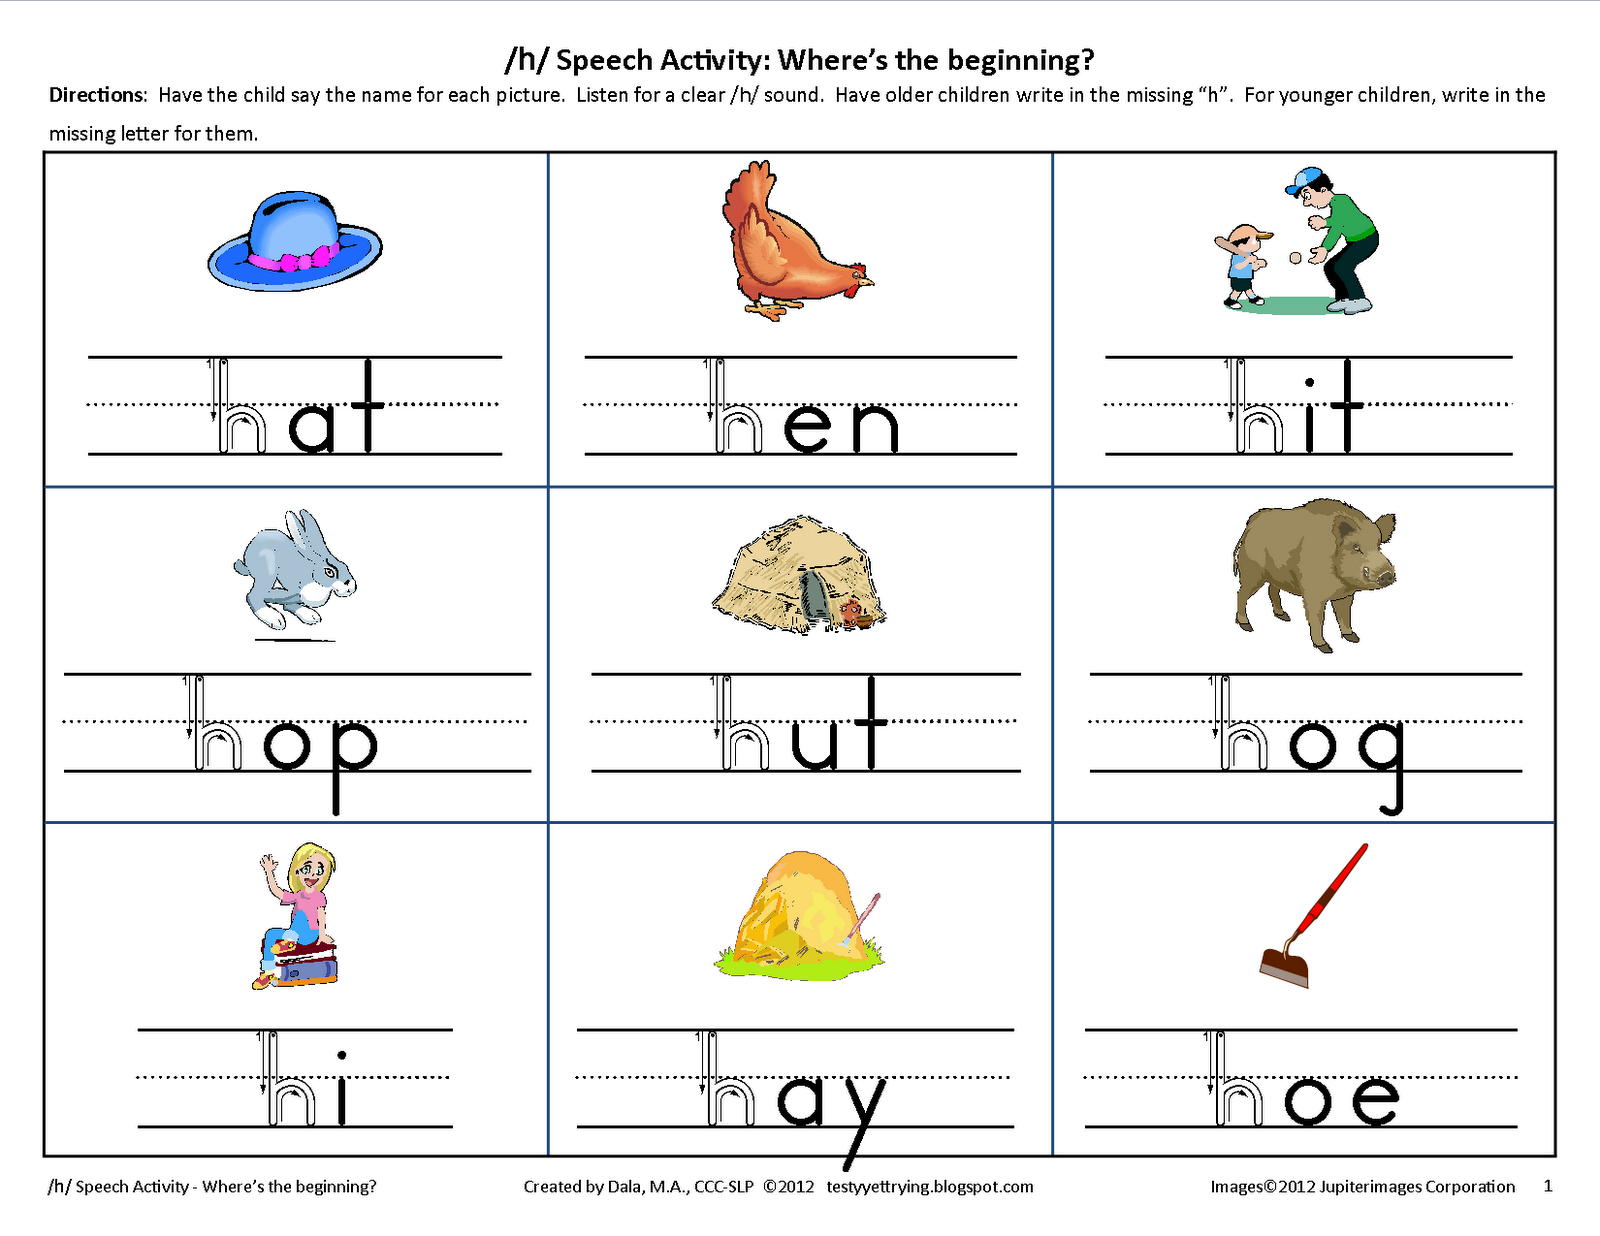 Proatmealus  Winsome Testy Yet Trying Initial H Speech Worksheet With Luxury Make Classroom Teachers Happy Reinforce Phonics And Handwriting And Practice Speech All At The Same Time With Astonishing Tenths Worksheet Also Poem Worksheets Th Grade In Addition Greater Than Less Than Worksheets Rd Grade And Grade  Math Worksheet As Well As Grade  Math Worksheets Printable Free Additionally Number Bonds To Ten Worksheets From Testyyettryingblogspotcom With Proatmealus  Luxury Testy Yet Trying Initial H Speech Worksheet With Astonishing Make Classroom Teachers Happy Reinforce Phonics And Handwriting And Practice Speech All At The Same Time And Winsome Tenths Worksheet Also Poem Worksheets Th Grade In Addition Greater Than Less Than Worksheets Rd Grade From Testyyettryingblogspotcom